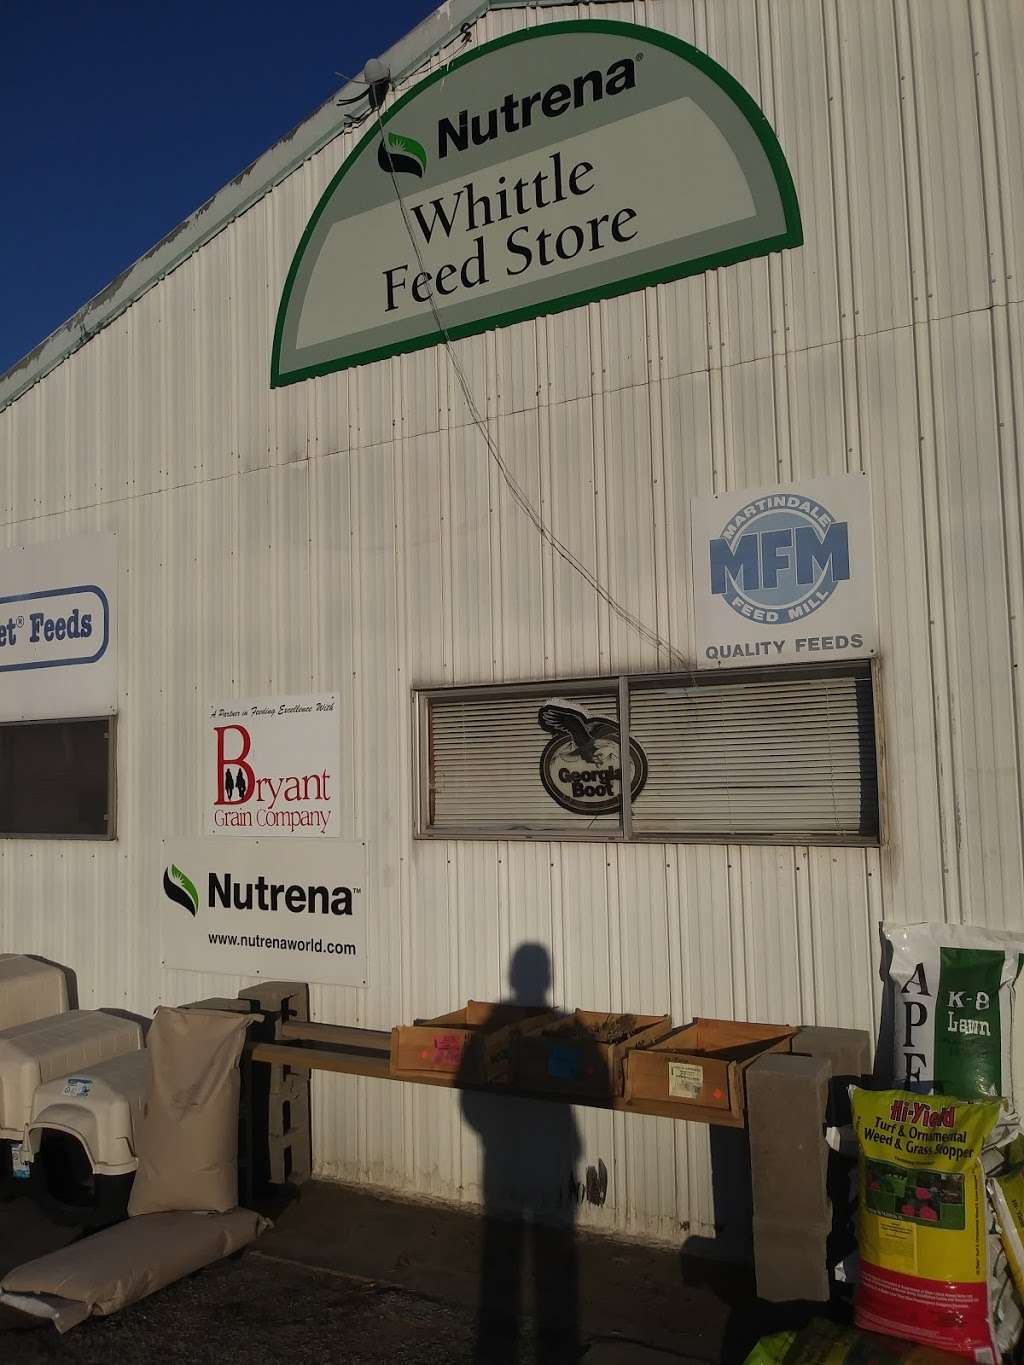 Whittle Feed & Seed Store - store  | Photo 1 of 6 | Address: 2660 Dowdy Ferry Rd, Dallas, TX 75217, USA | Phone: (972) 286-2825